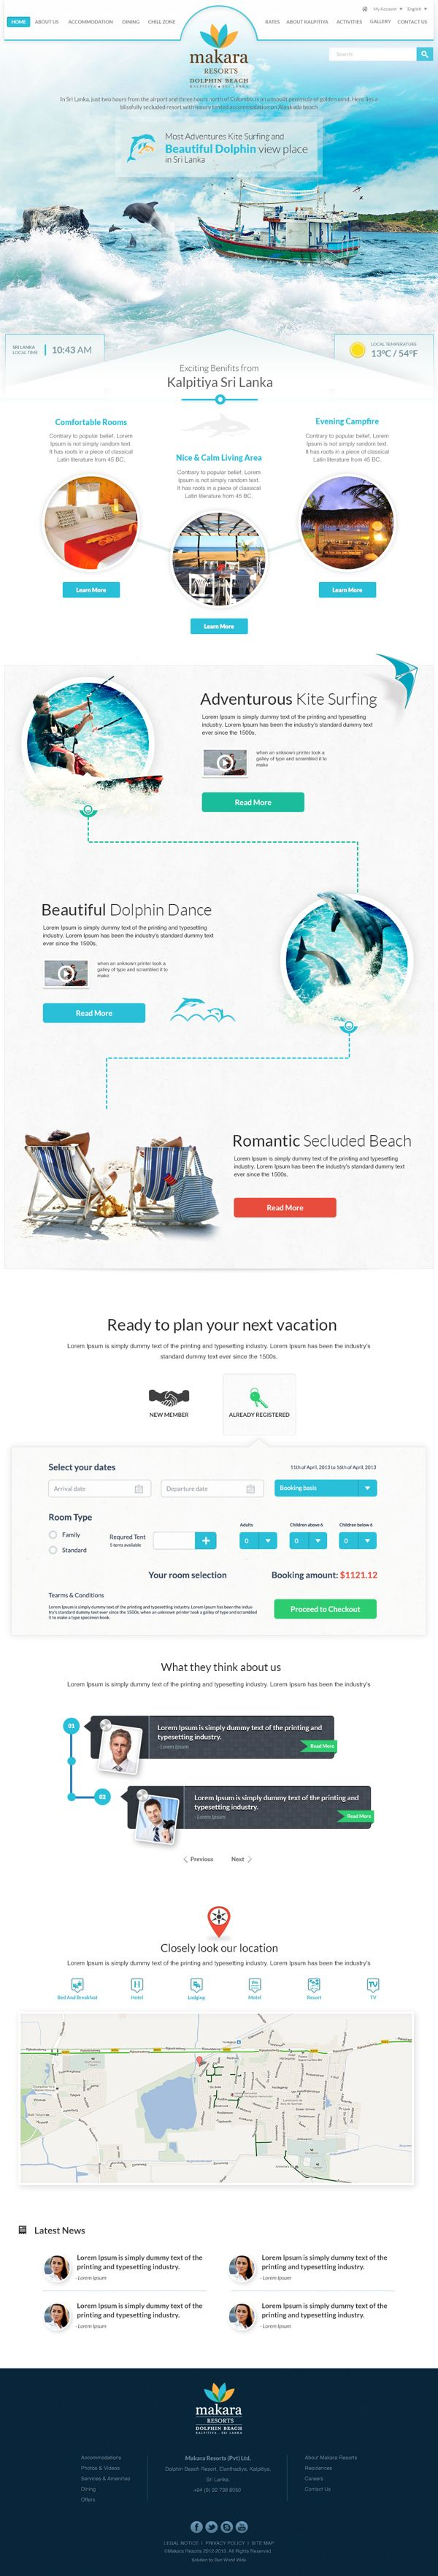 Makara Resorts - Kalpitiya (Revamp) by Yashi , via Behance